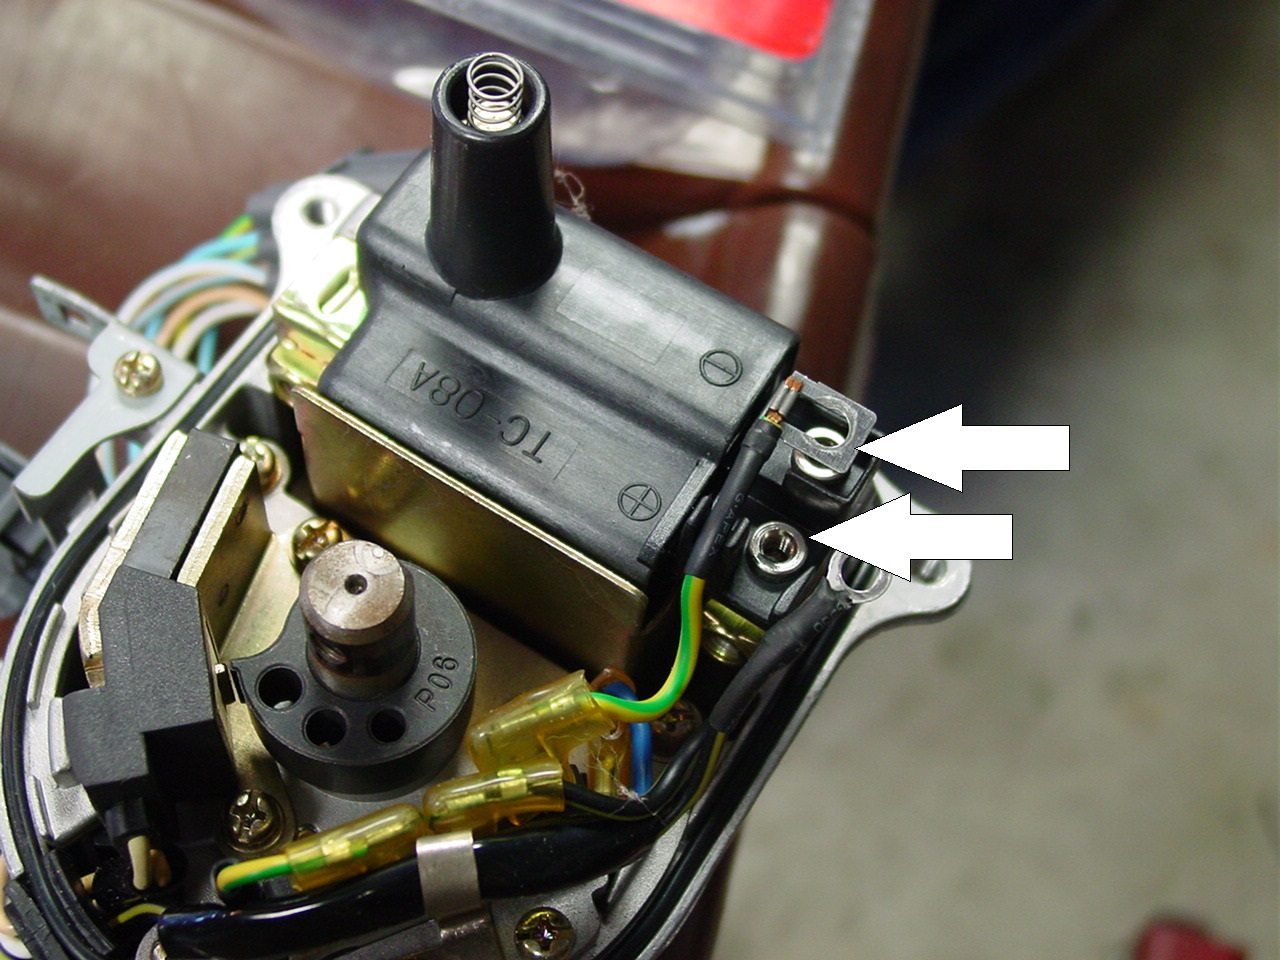 civic integra msd external coil conversion cut the original connectors to the coil and strip back the insulation